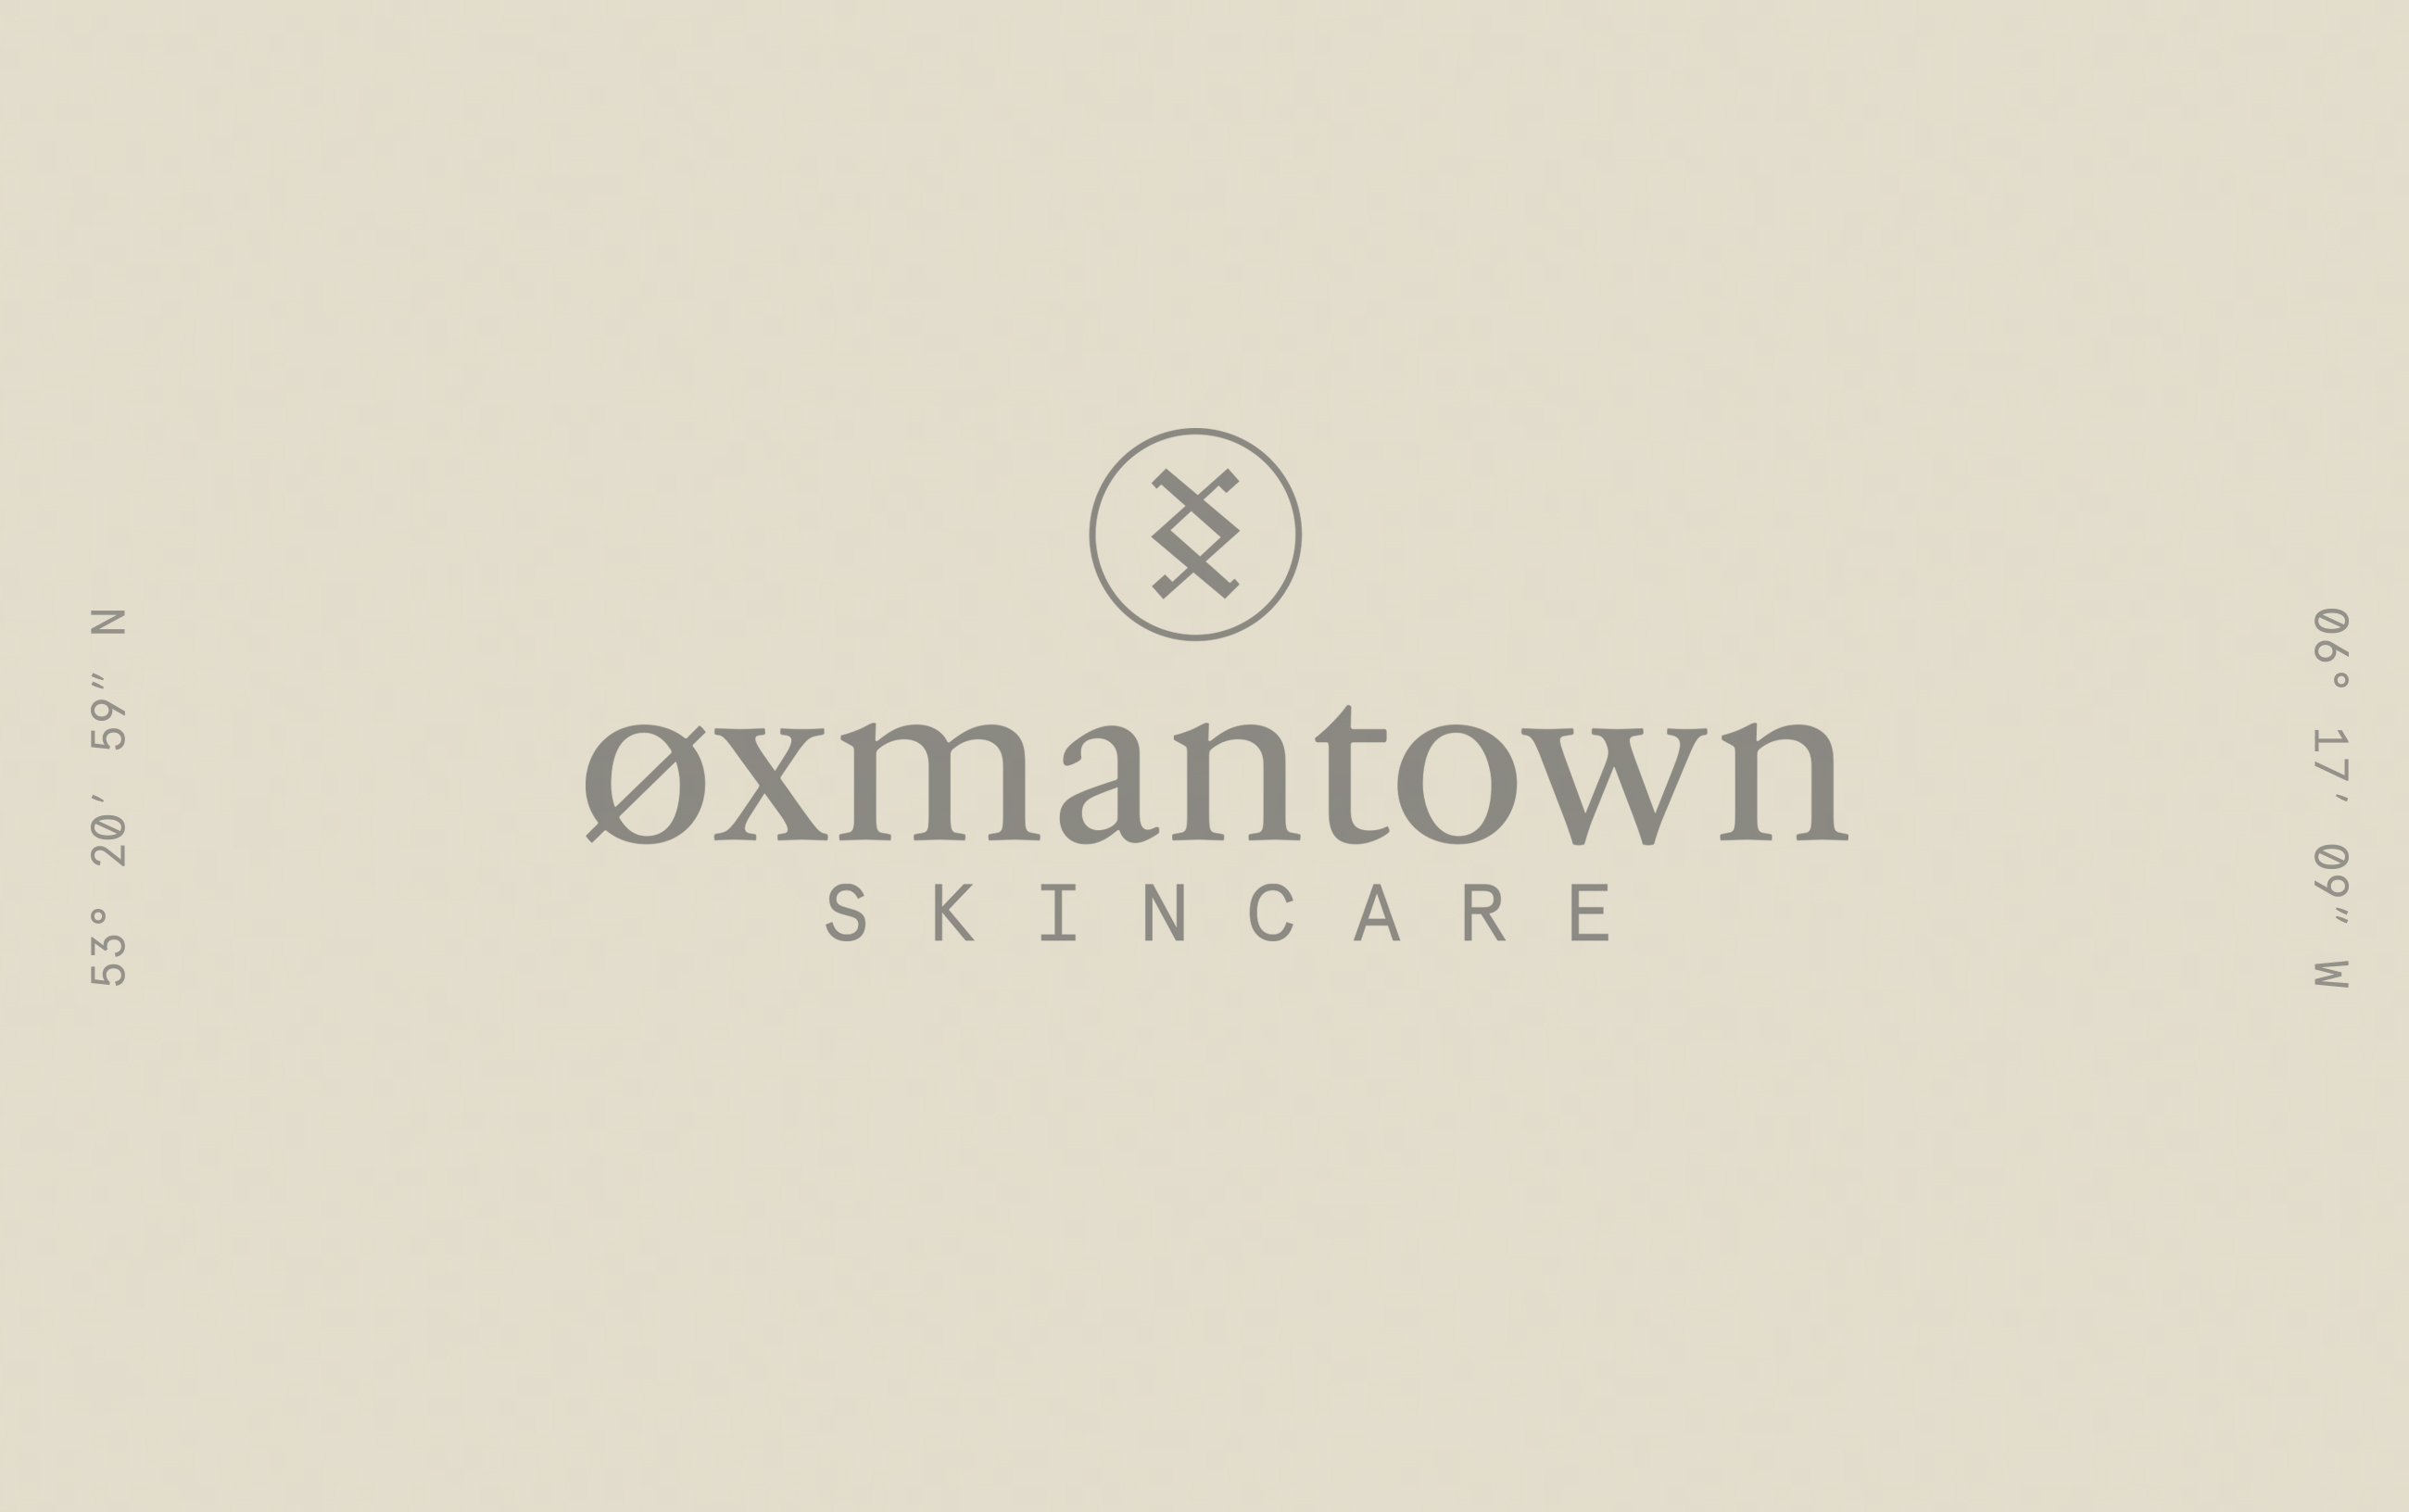 Cover image: Øxmantown Skincare